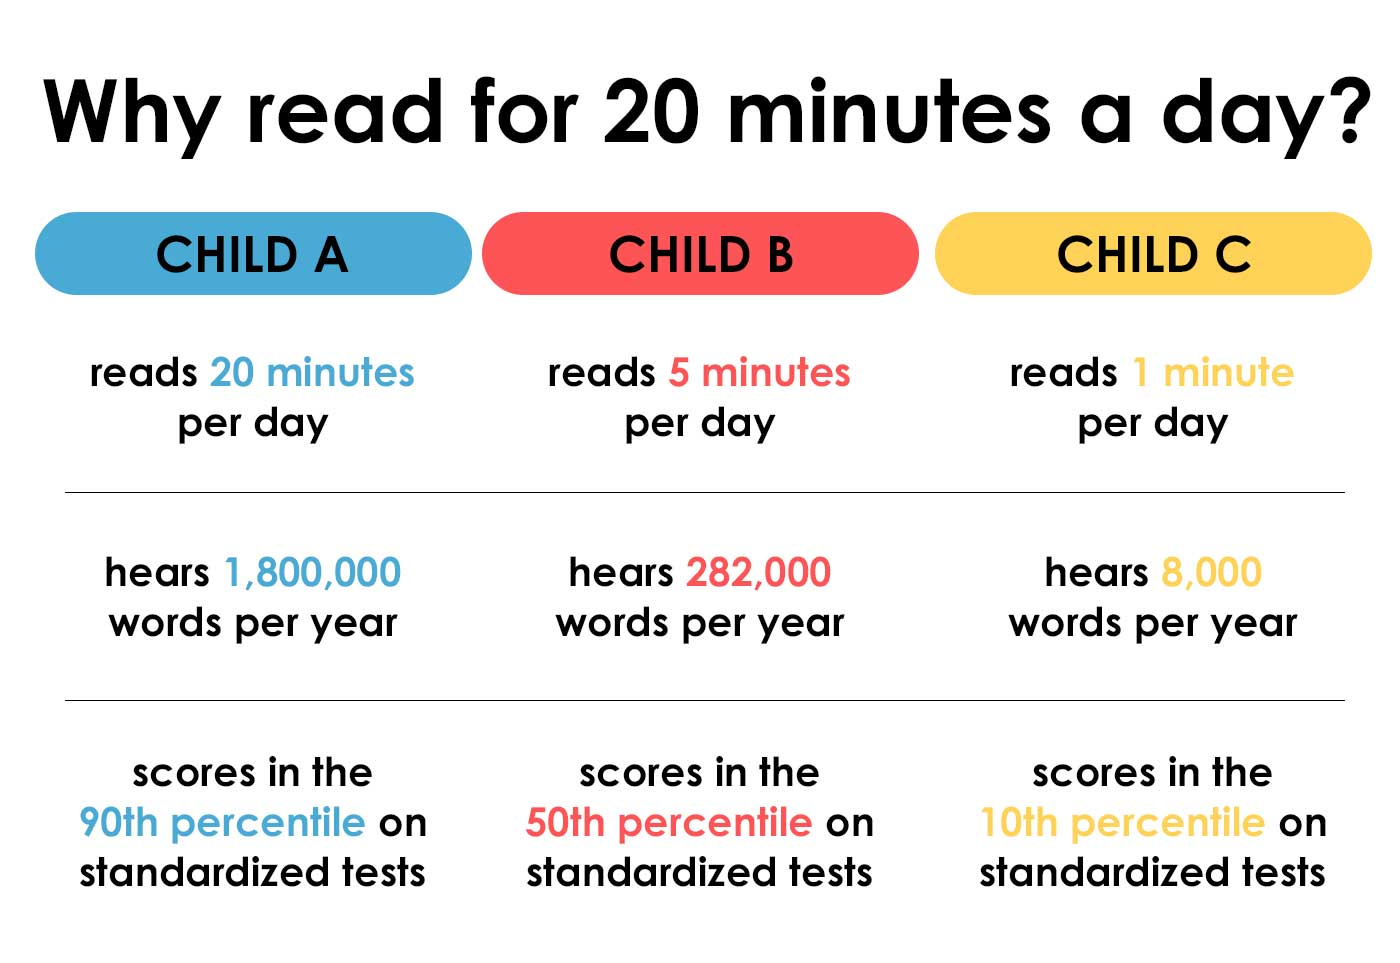 Why Read for 20 Minutes a Day?